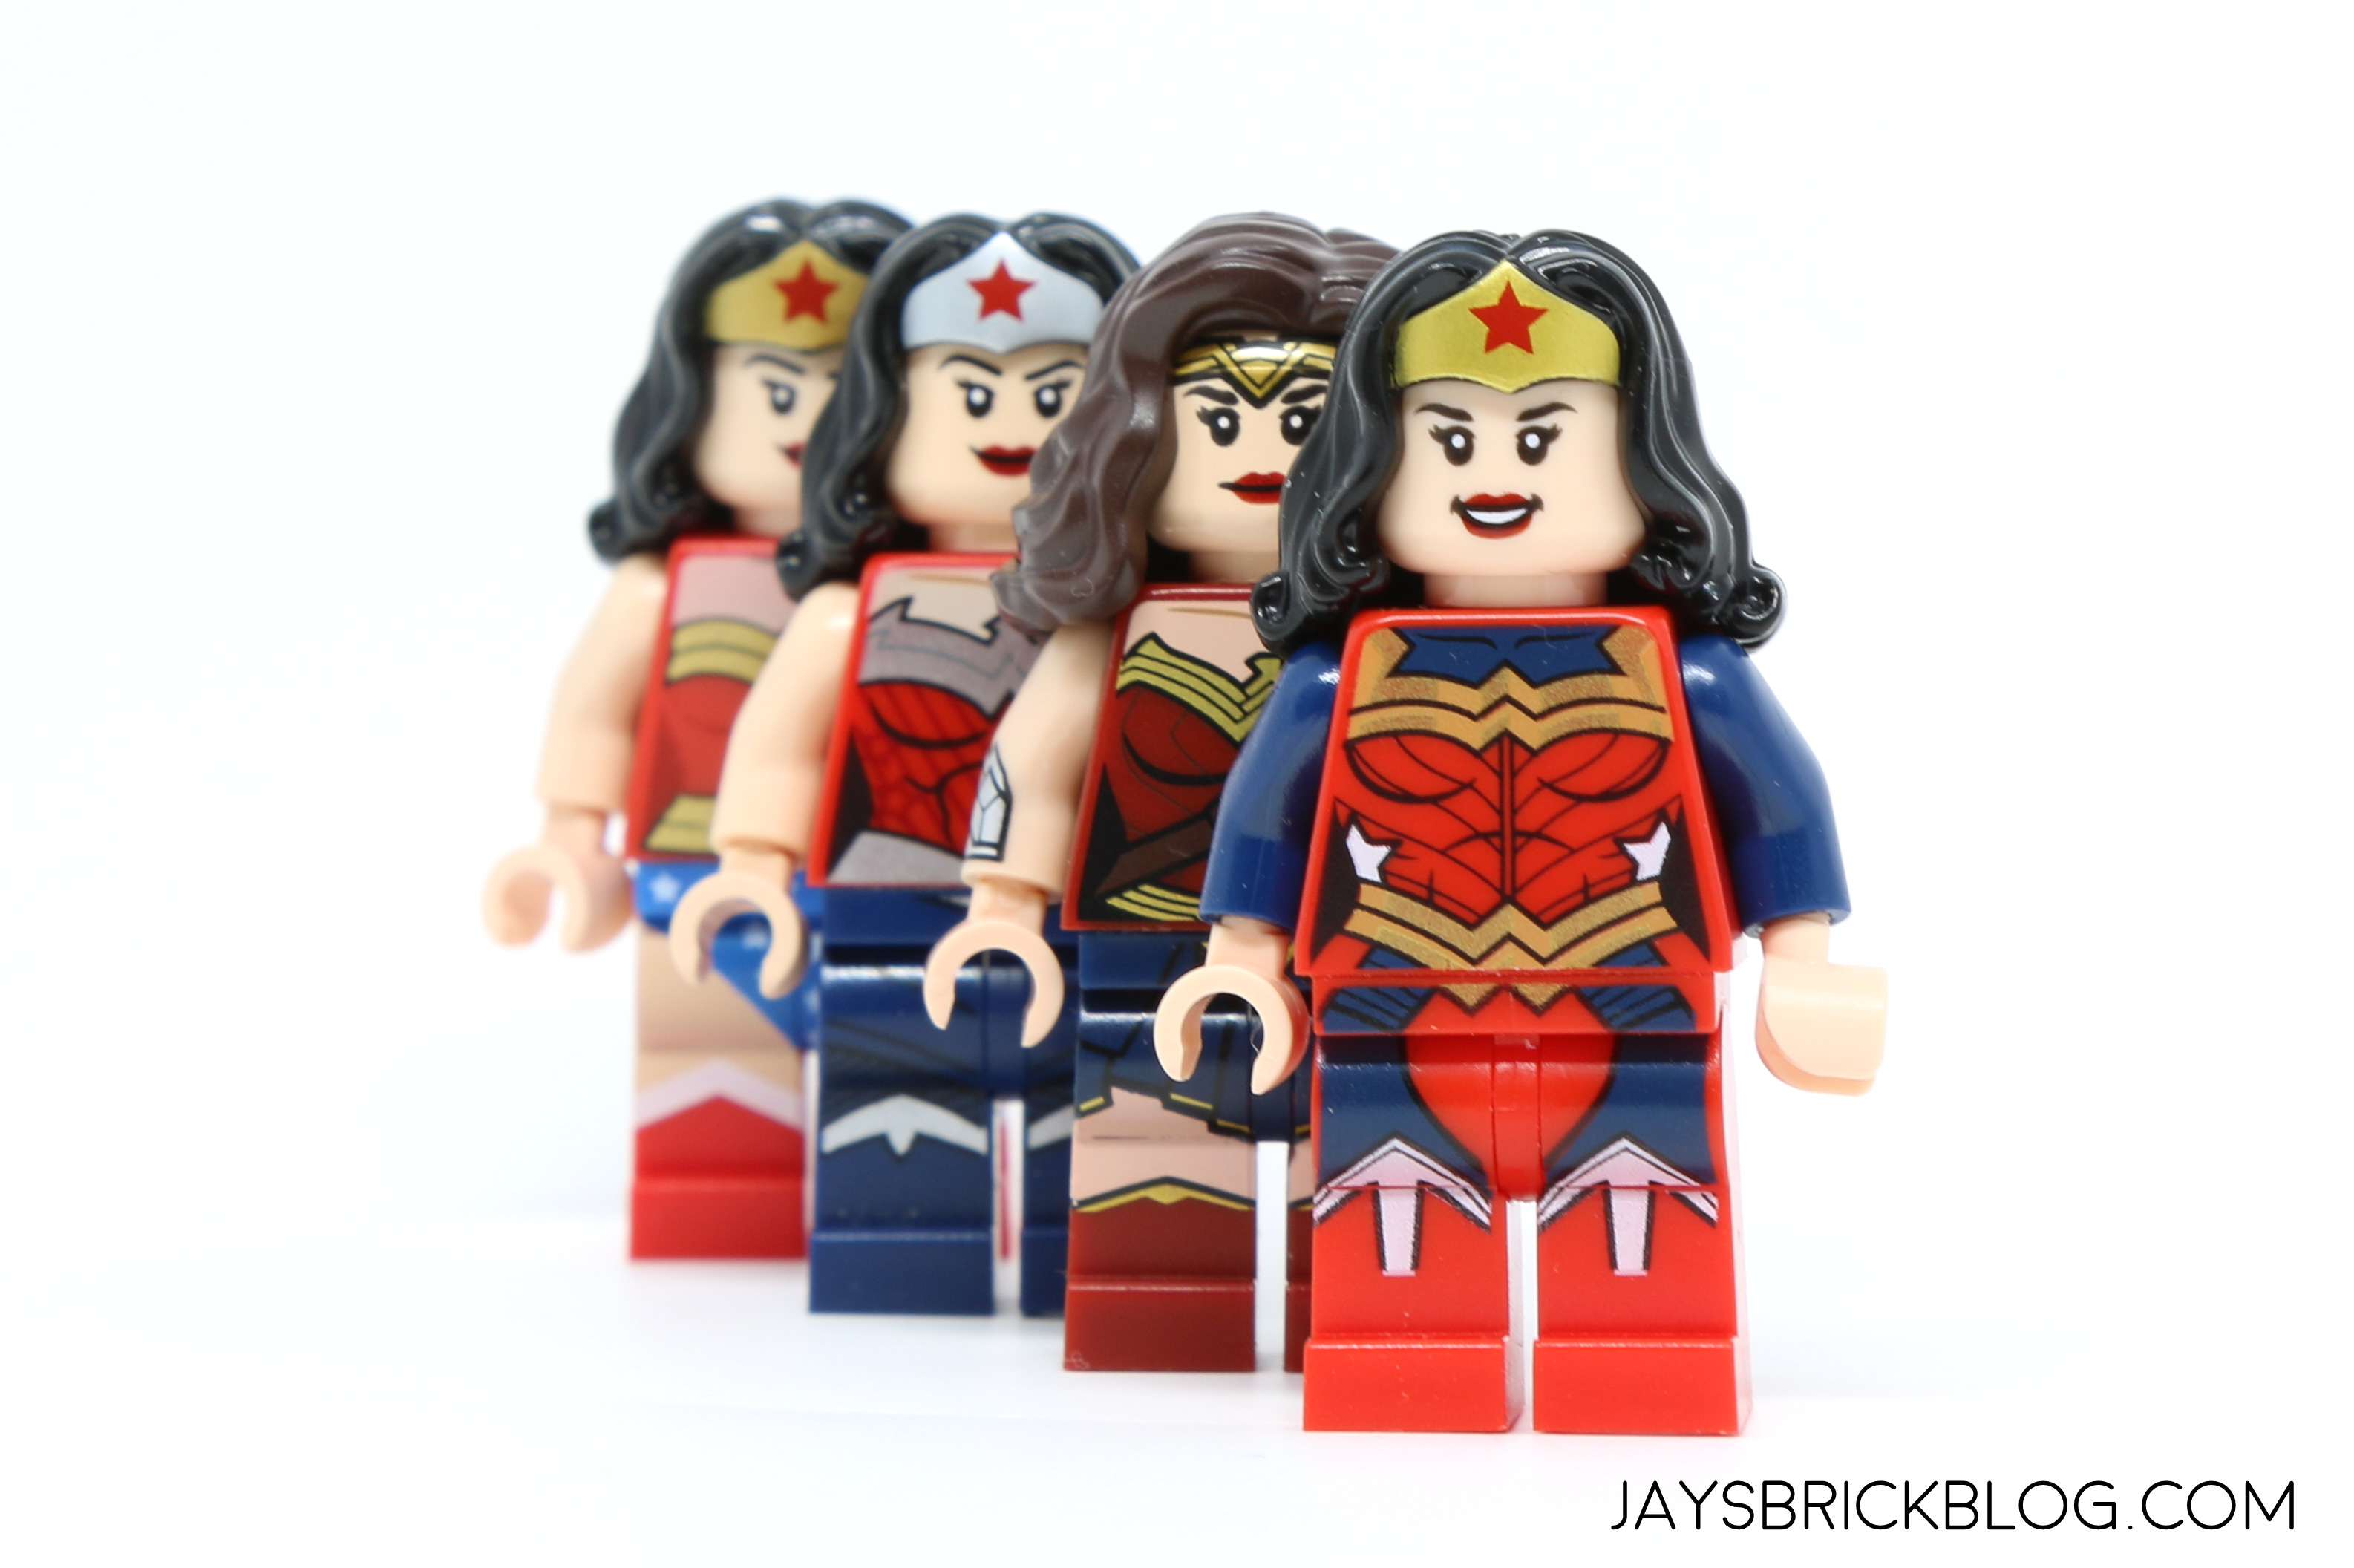 i know some people cant stand minidolls so here are all the wonder women minifigures arranged in reverse chronological order to illustrate the evolution - Lego Wonder Woman